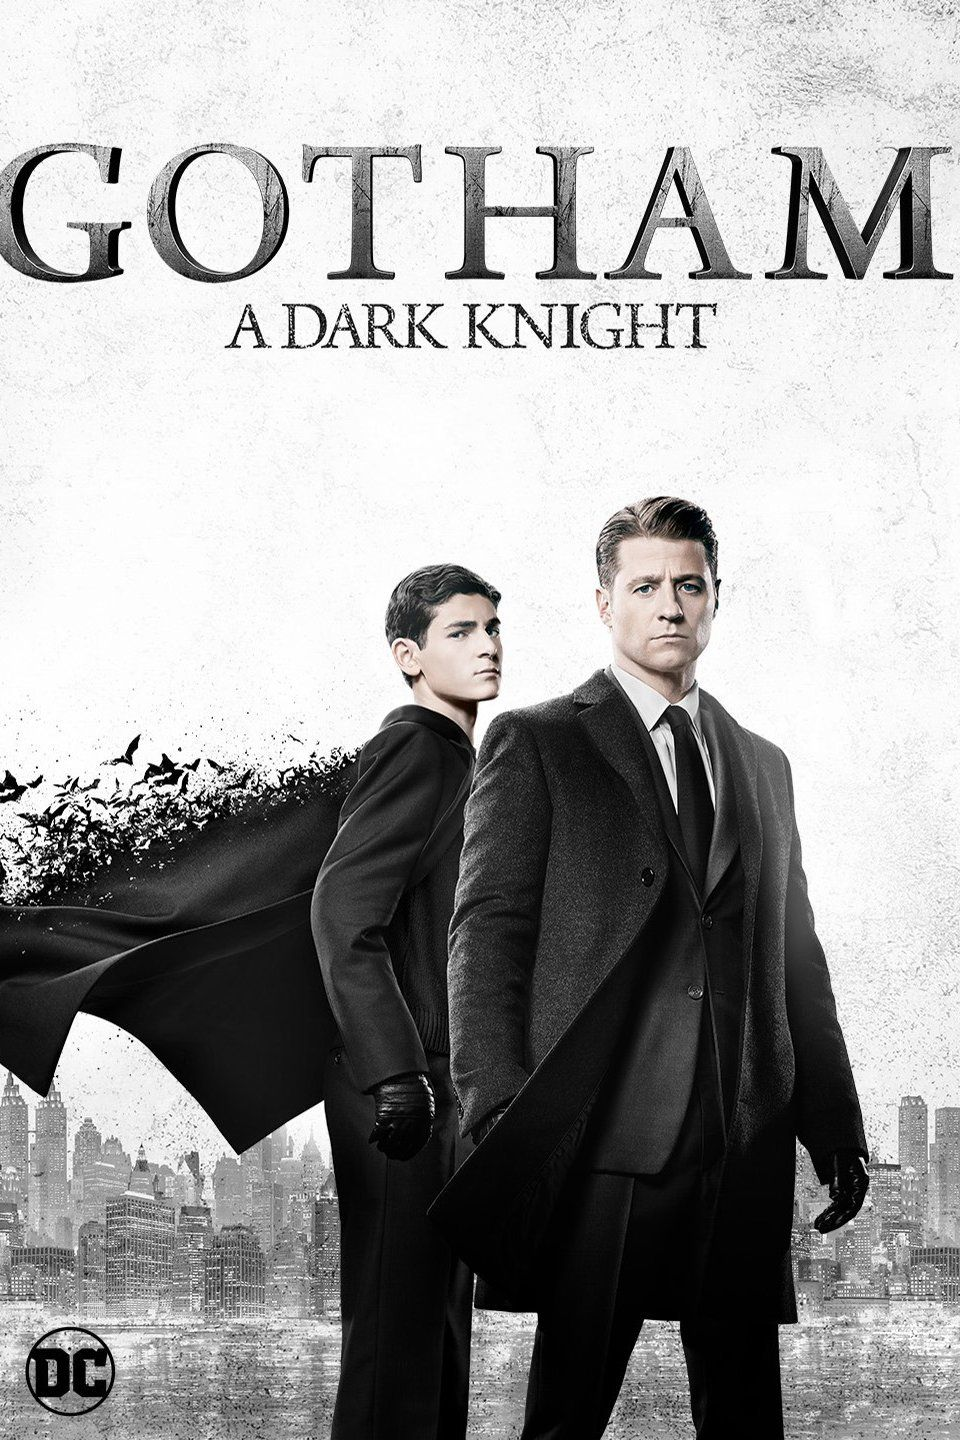 Gotham season 4 episode 12 subtitles | Tv Show Next Week | Pinterest ...